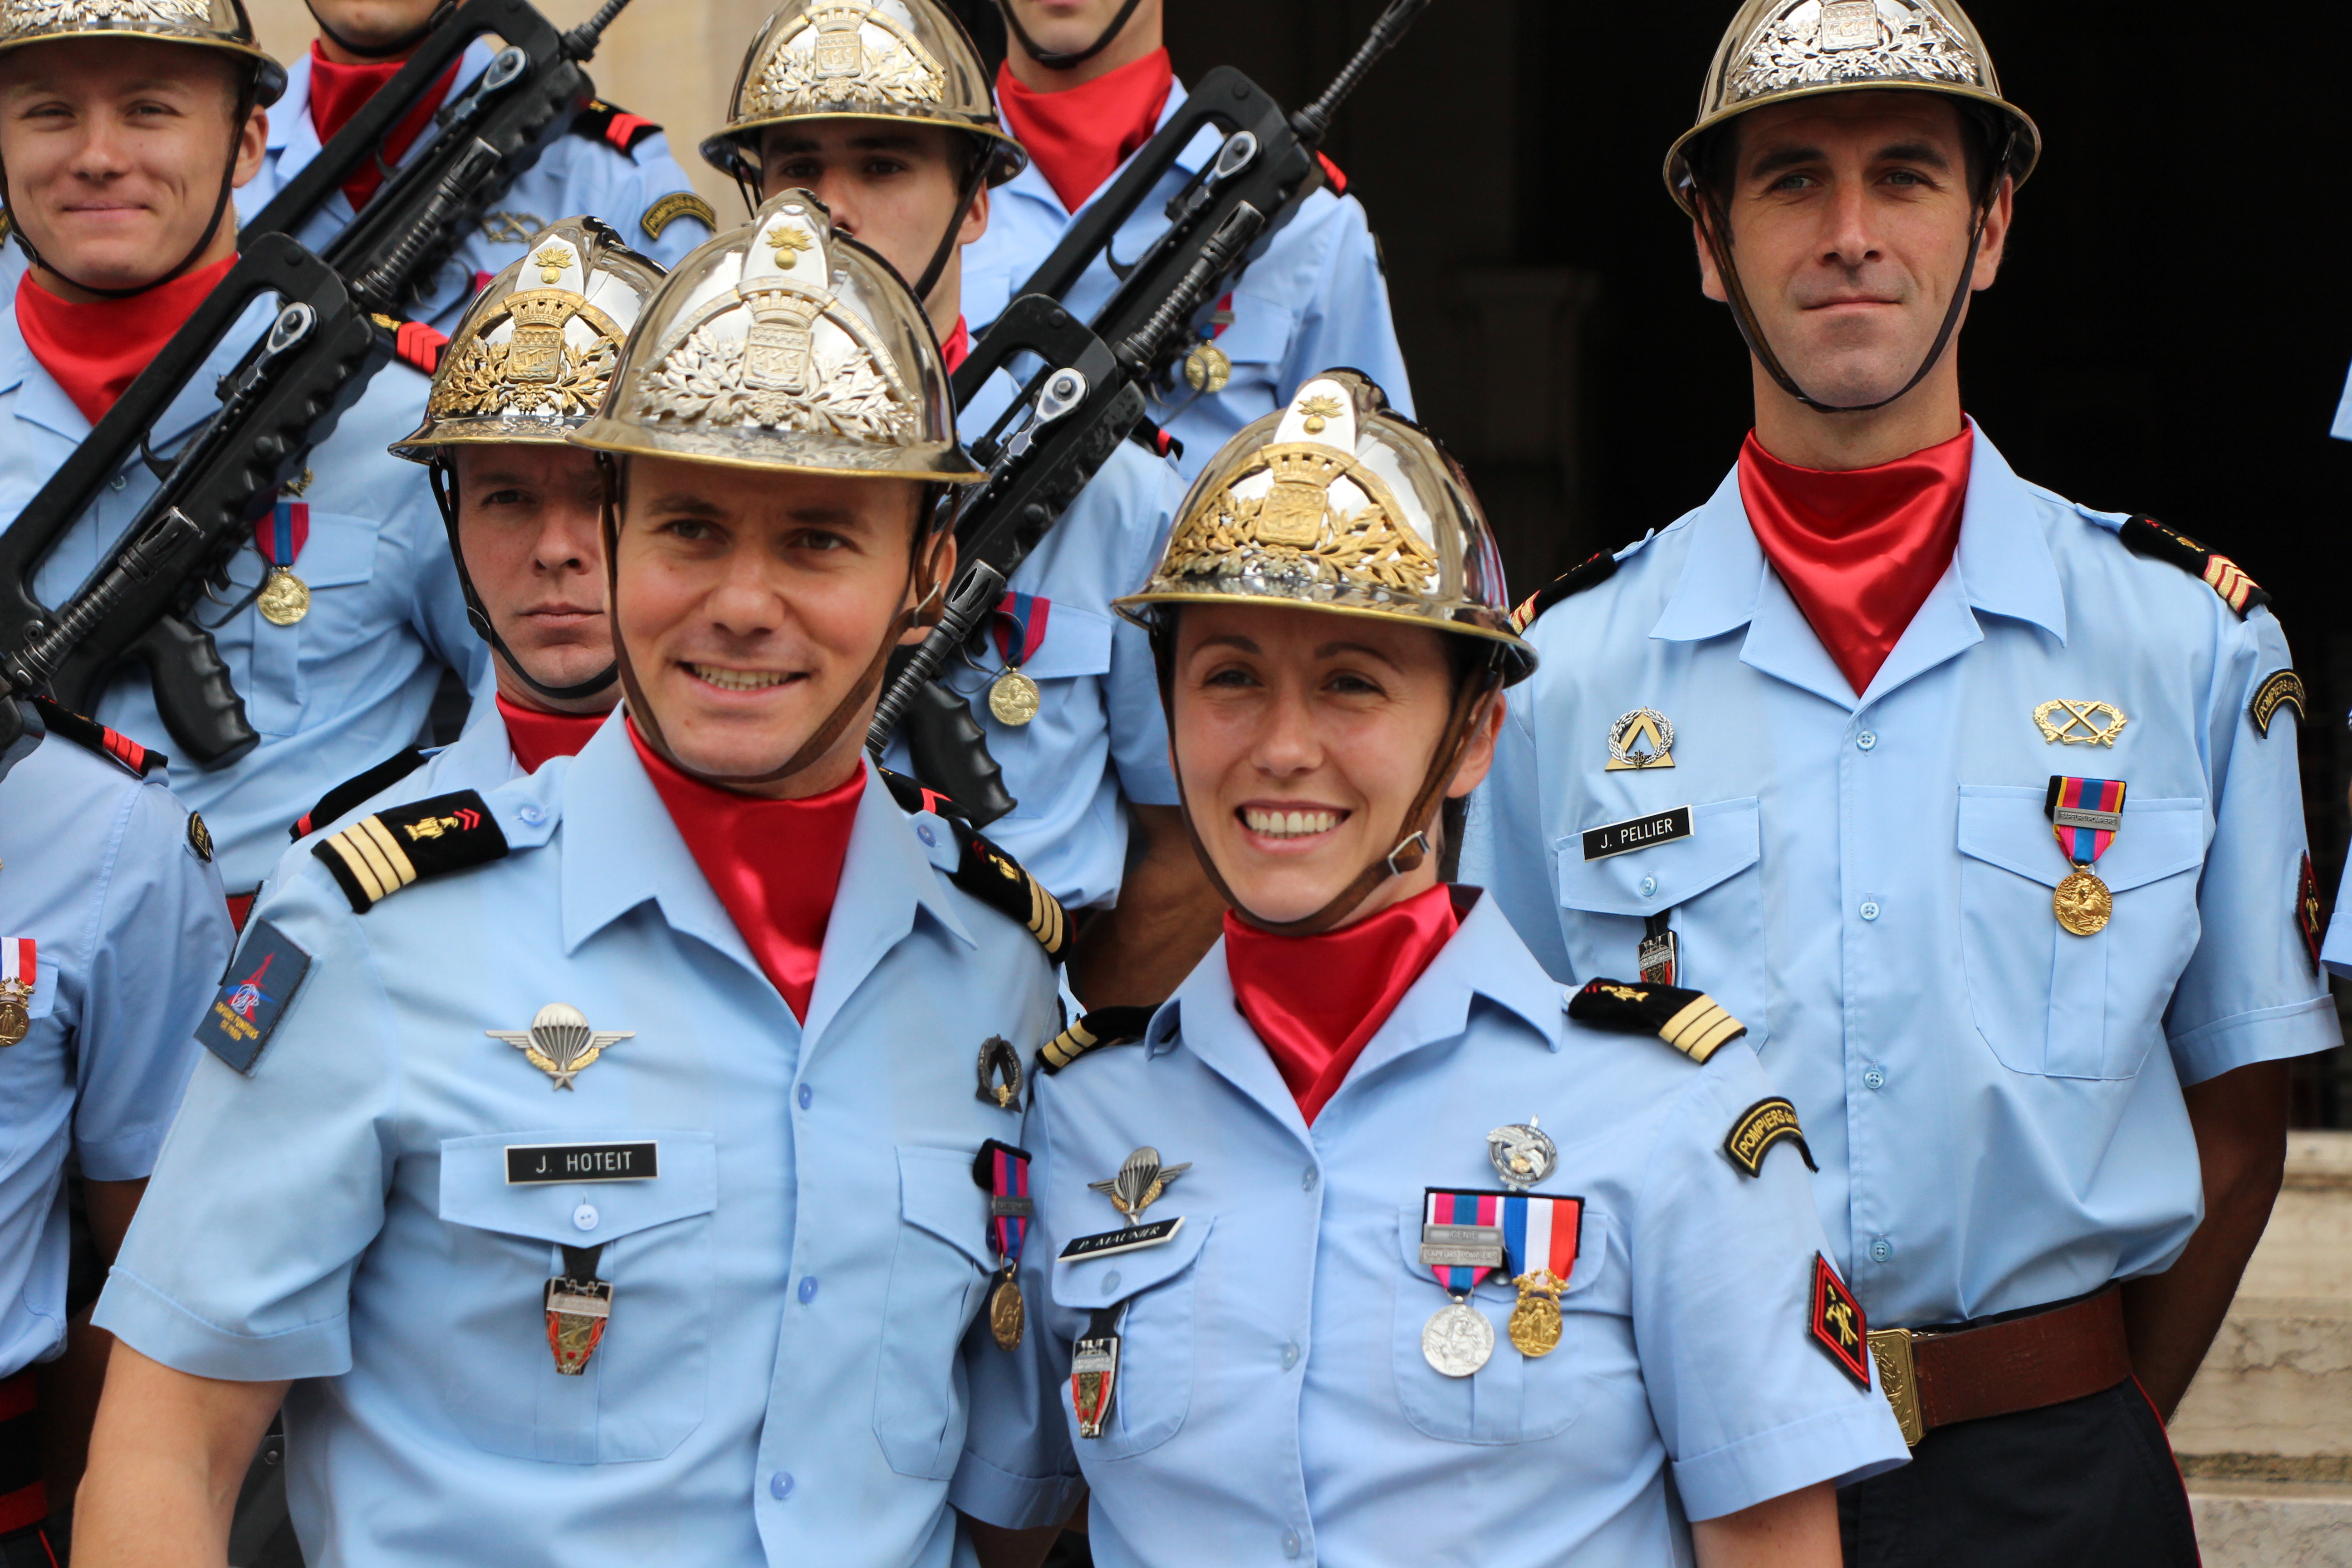 pompiers-capitaine-passation-commandement-paris-compagnie-actualites